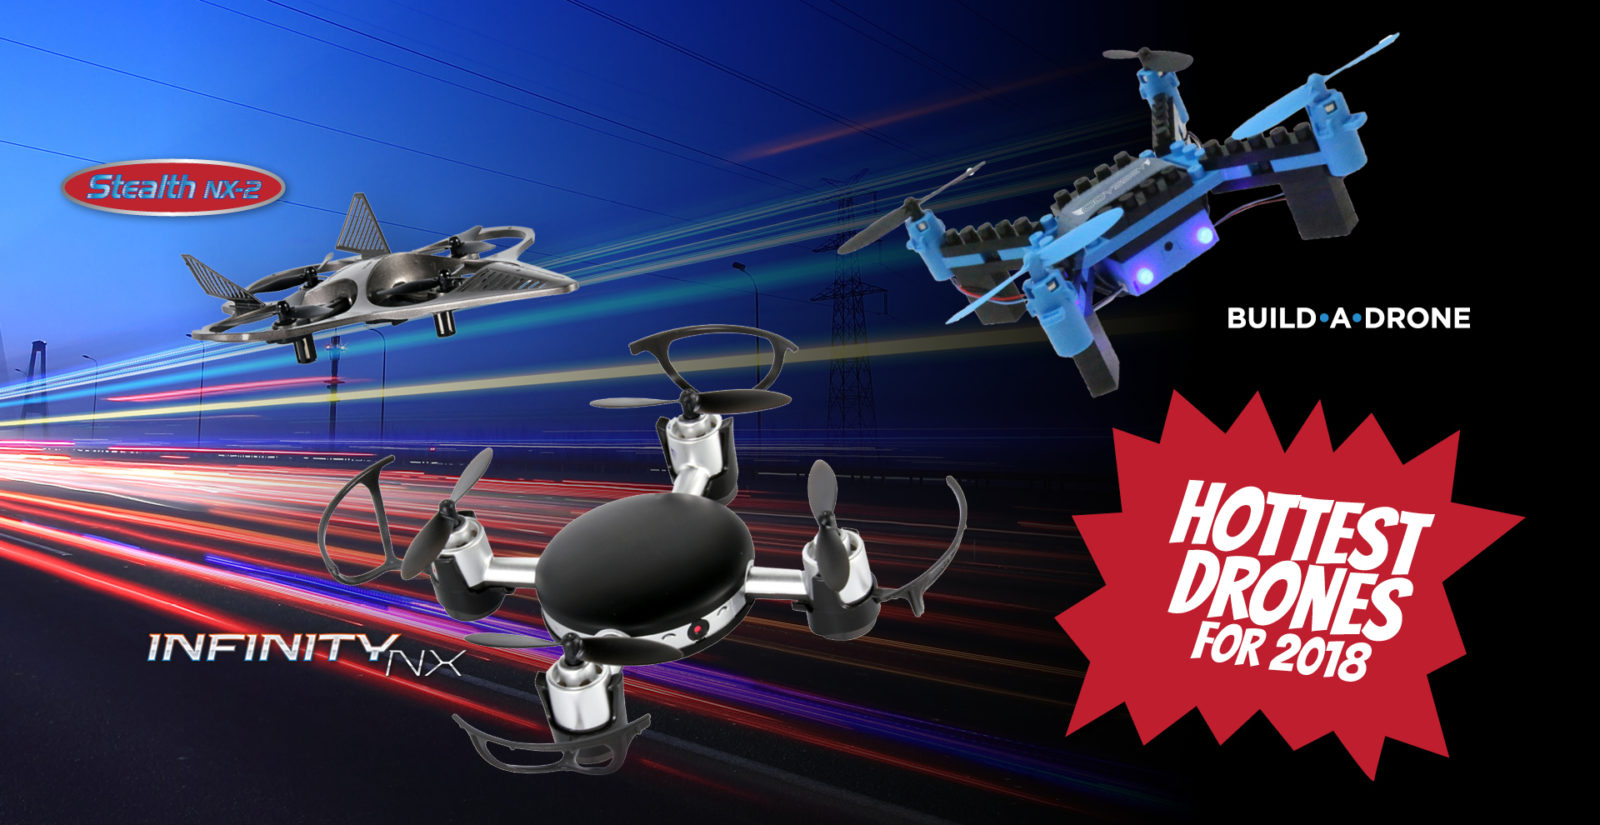 quad drone, odyssey toys, LEDs, LED lights, superb right LEDs, drone, fun drone, toy drone